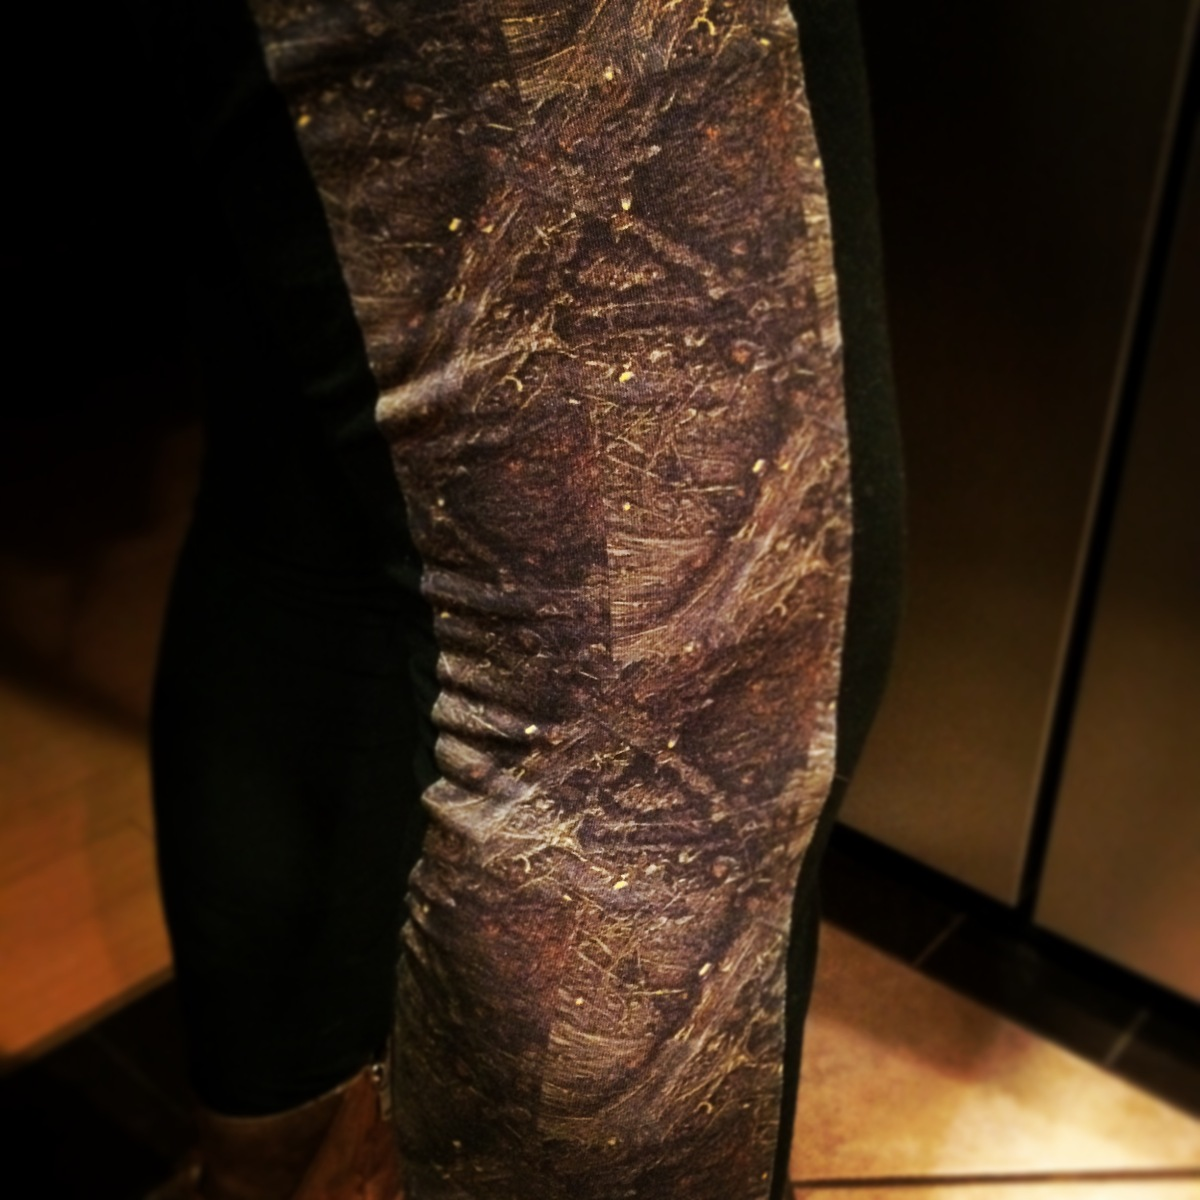 plaidypus looking glass leggings rat spinal cord neuroscience fashion